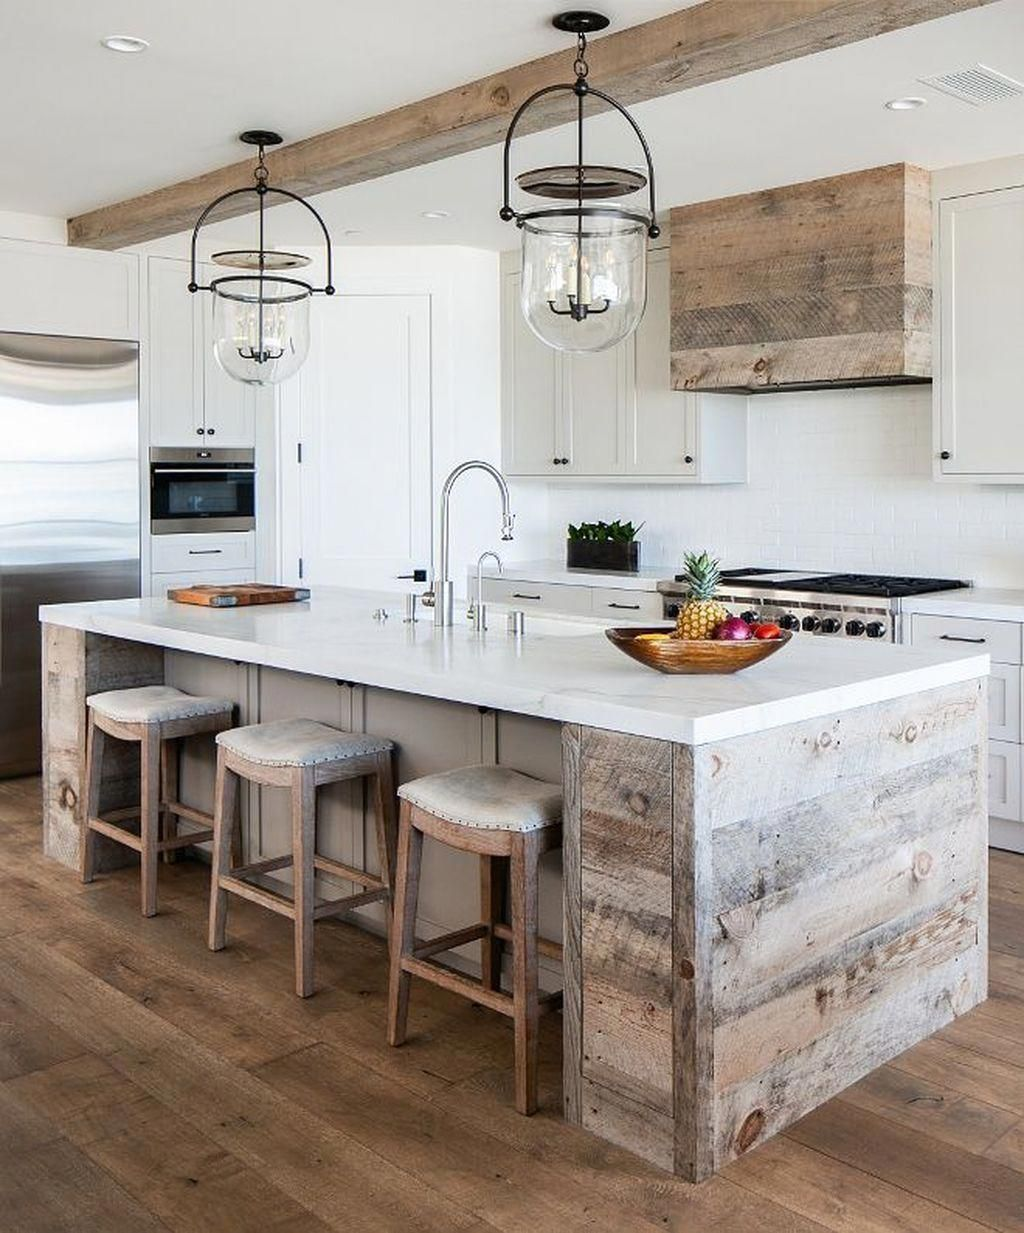 29 Beautiful Beach Style Kitchen Ideas For Your Beach House Or Villa In 2020 Galley Kitchen Remodel Rustic Kitchen Kitchen Renovation